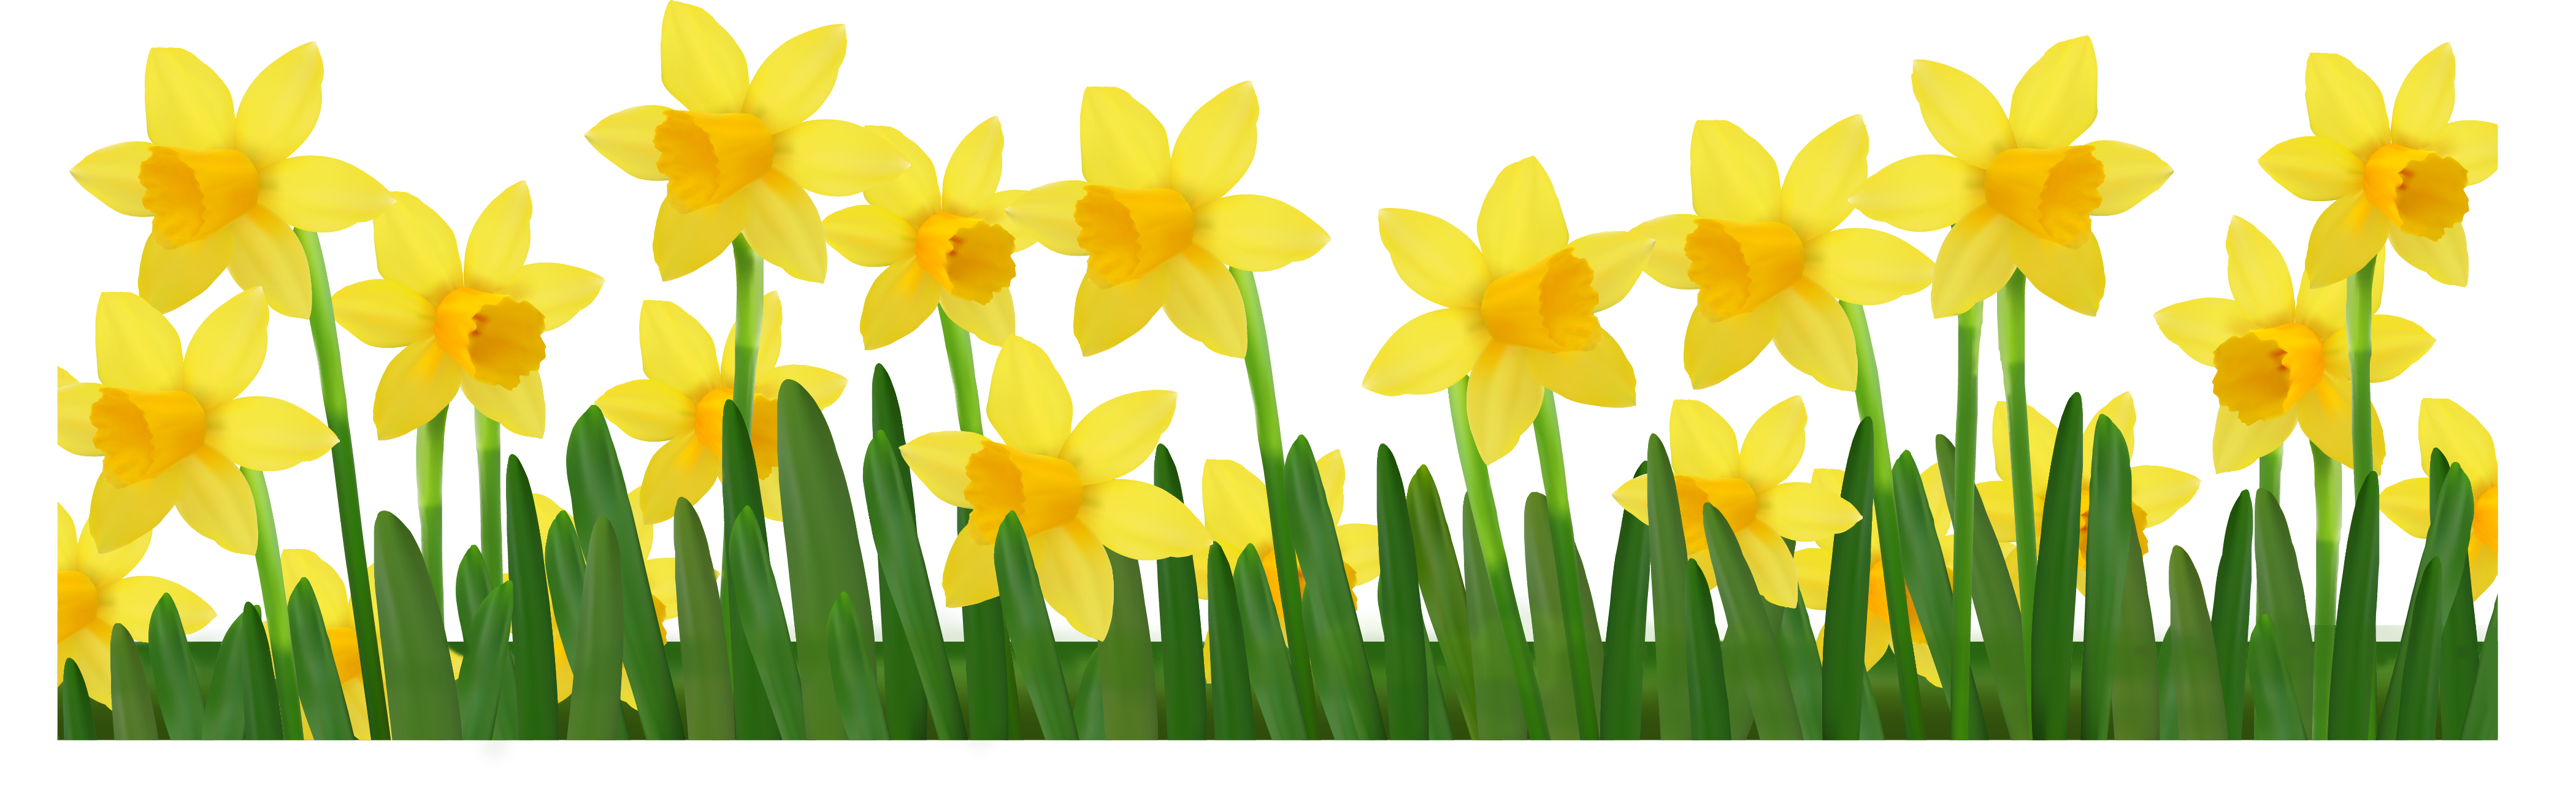 Gate clipart plant grass. With daffodils png picture